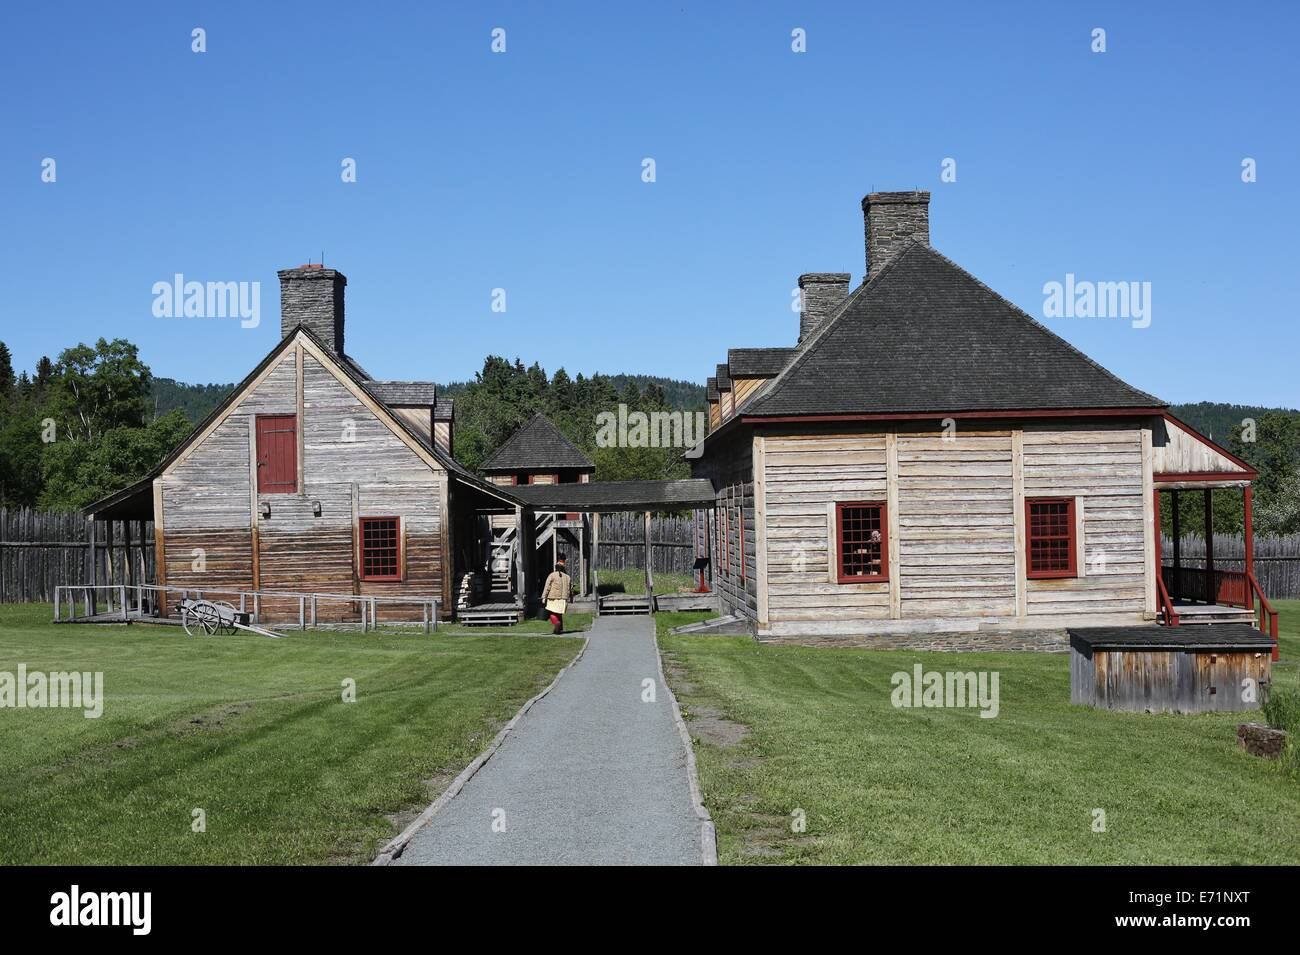 The Heritage Center at Grand Portage National Monument in Minnesota. - Stock Image